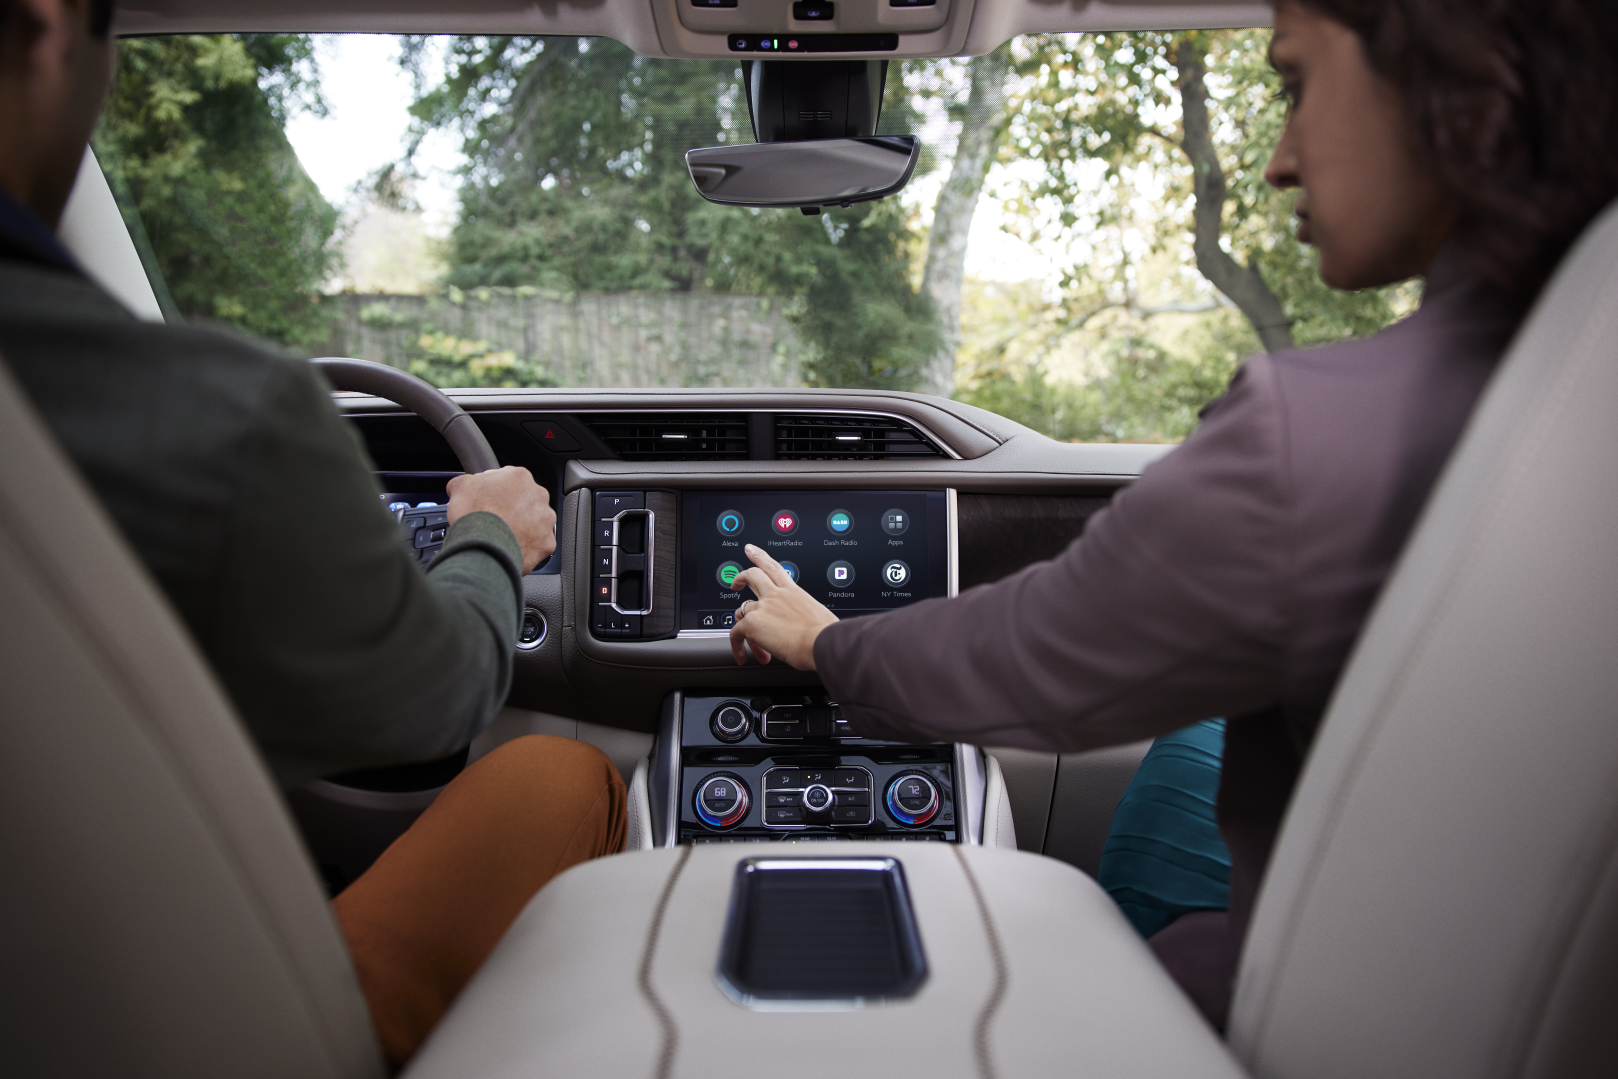 GMC driver using in-vehicle apps